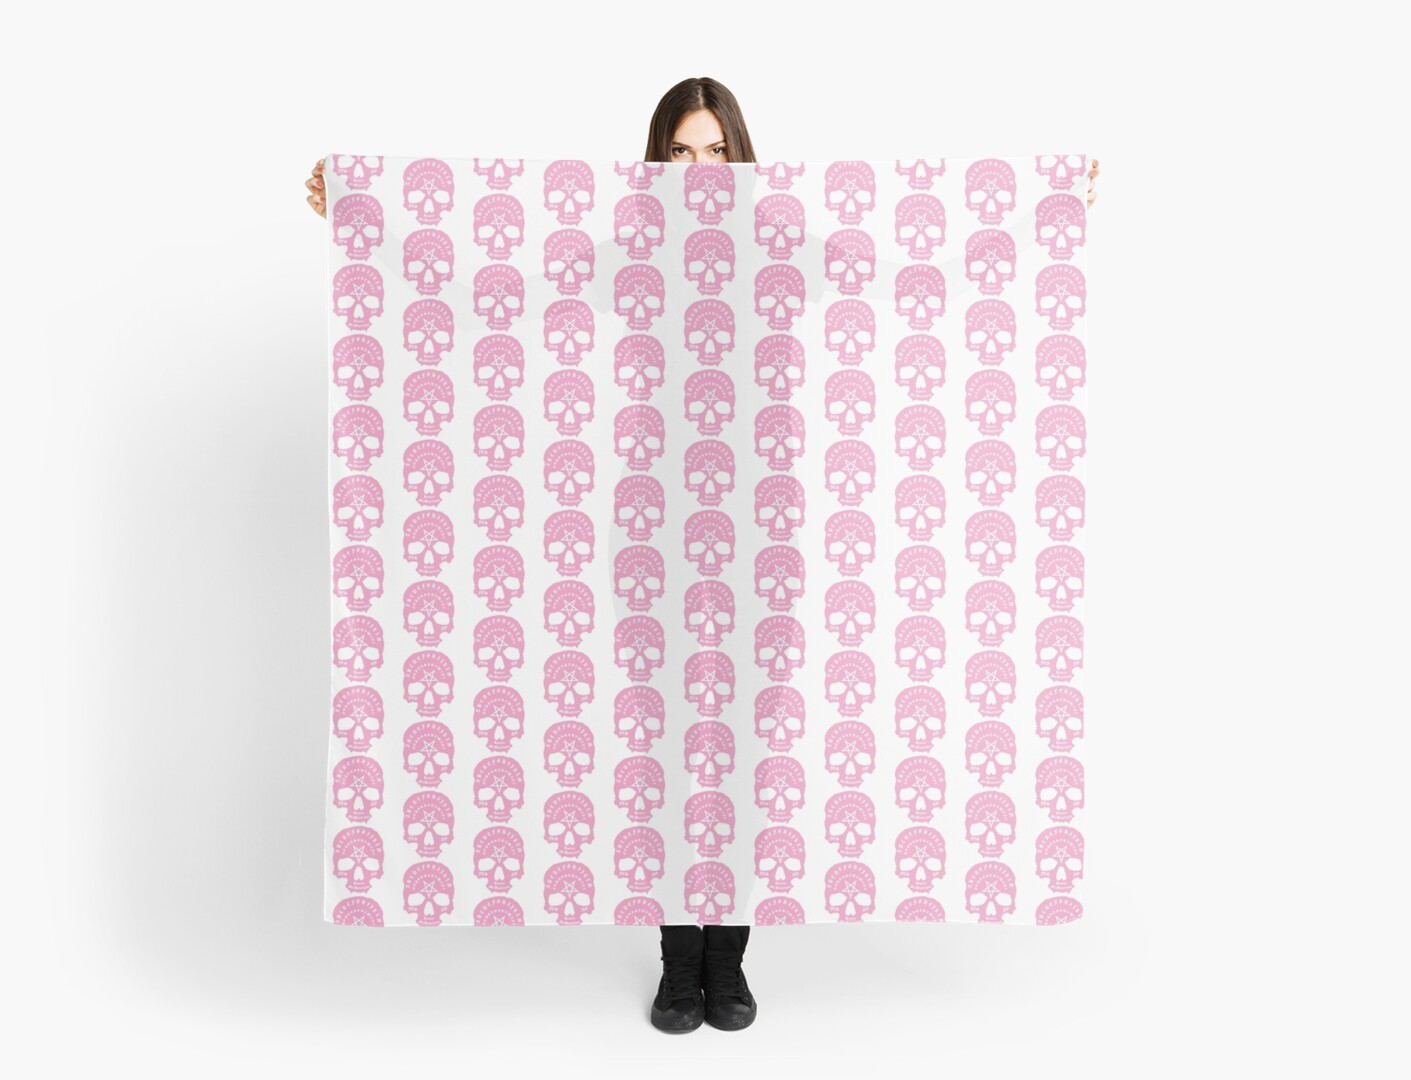 Pink Ouija Skull on White Background  by Danielle Stanborough